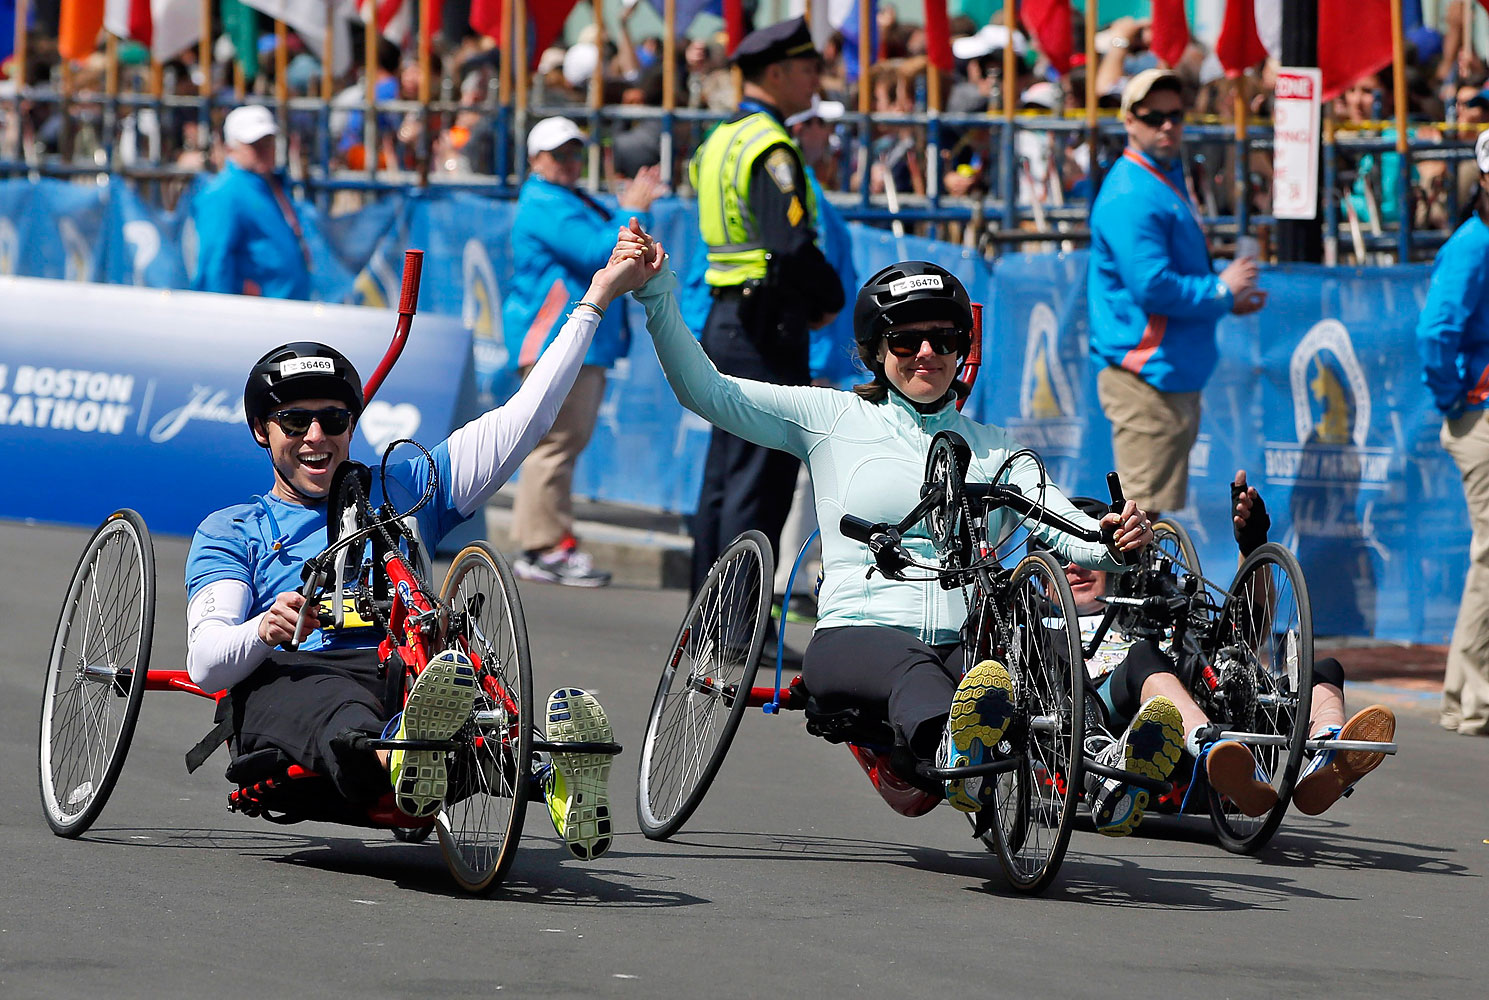 Boston Marathon husband and wife bombing survivors Patrick Downes and Jessica Kensky, who each lost a leg in last year's bombings, roll across the finish line in the 118th Boston Marathon, April 21, 2014 in Boston.